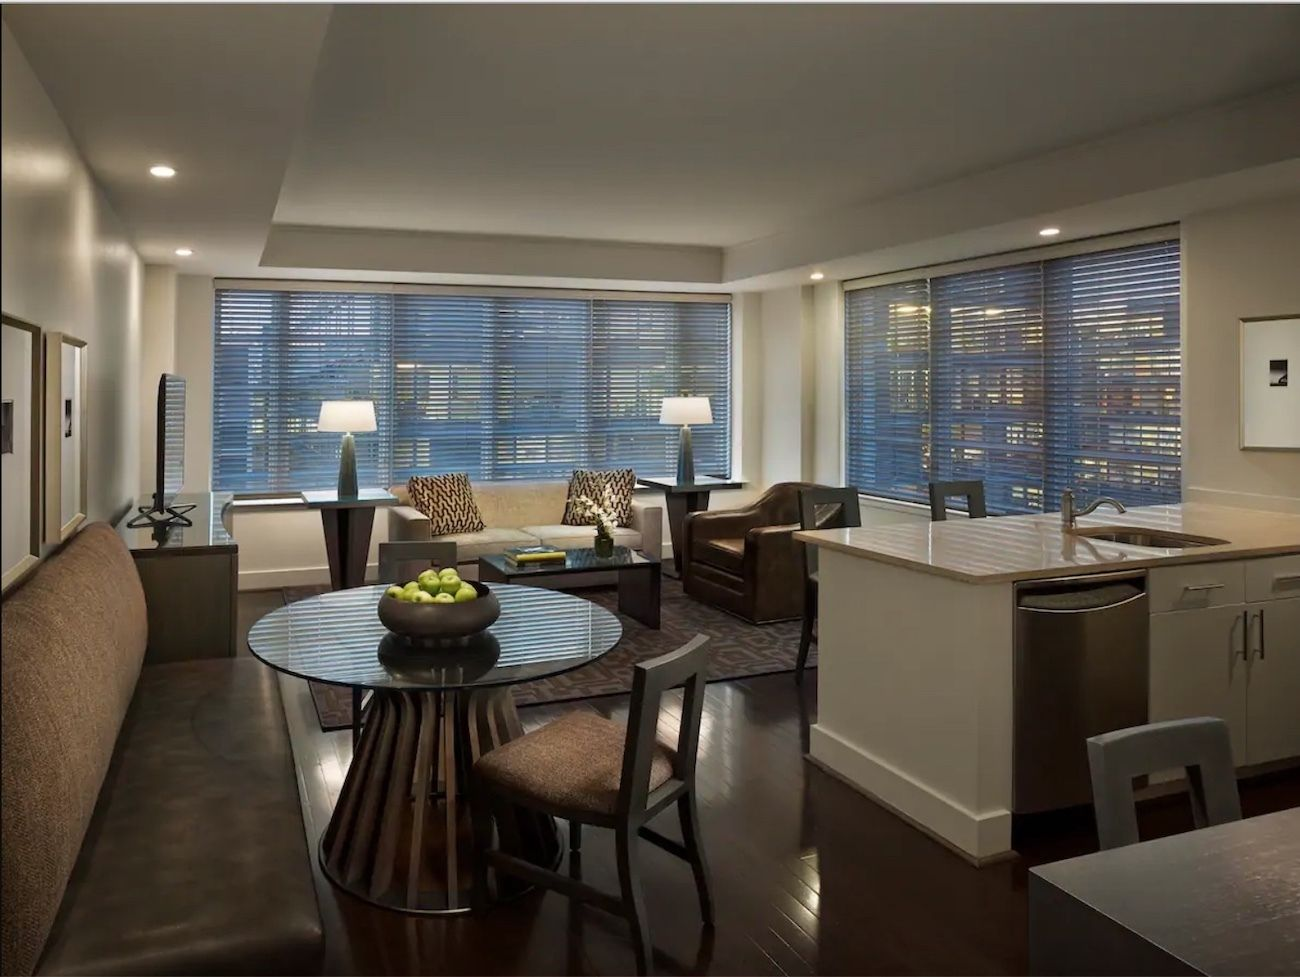 Two-bedroom-suite-near- Monument-Memorials-museums-Airbnb-Washington-DC, Washington, DC Airbnbs